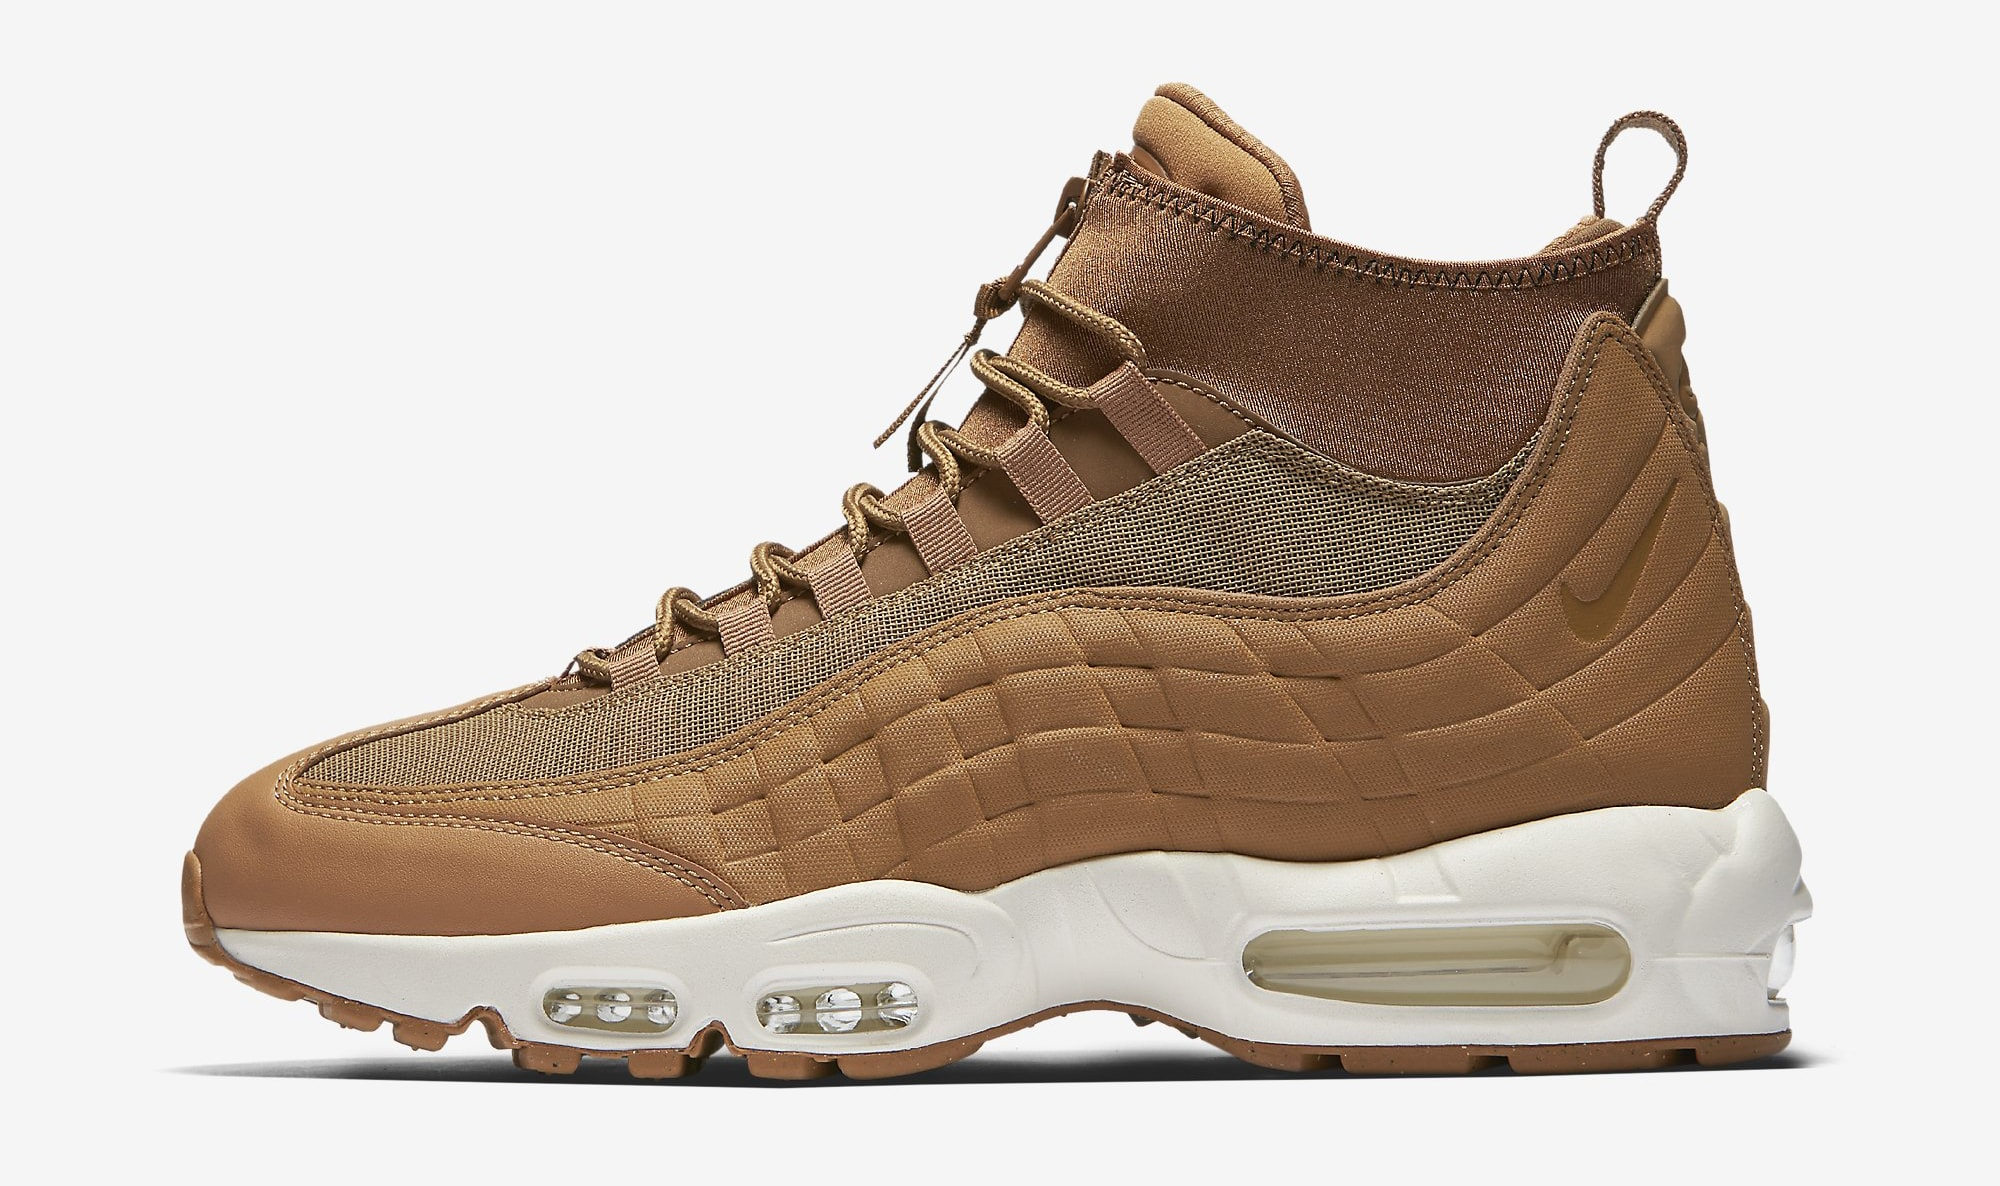 1f7c993ef6 ... shop image via nike wheat nike air max 95 flax 806809 201 f0445 e2f71  ...